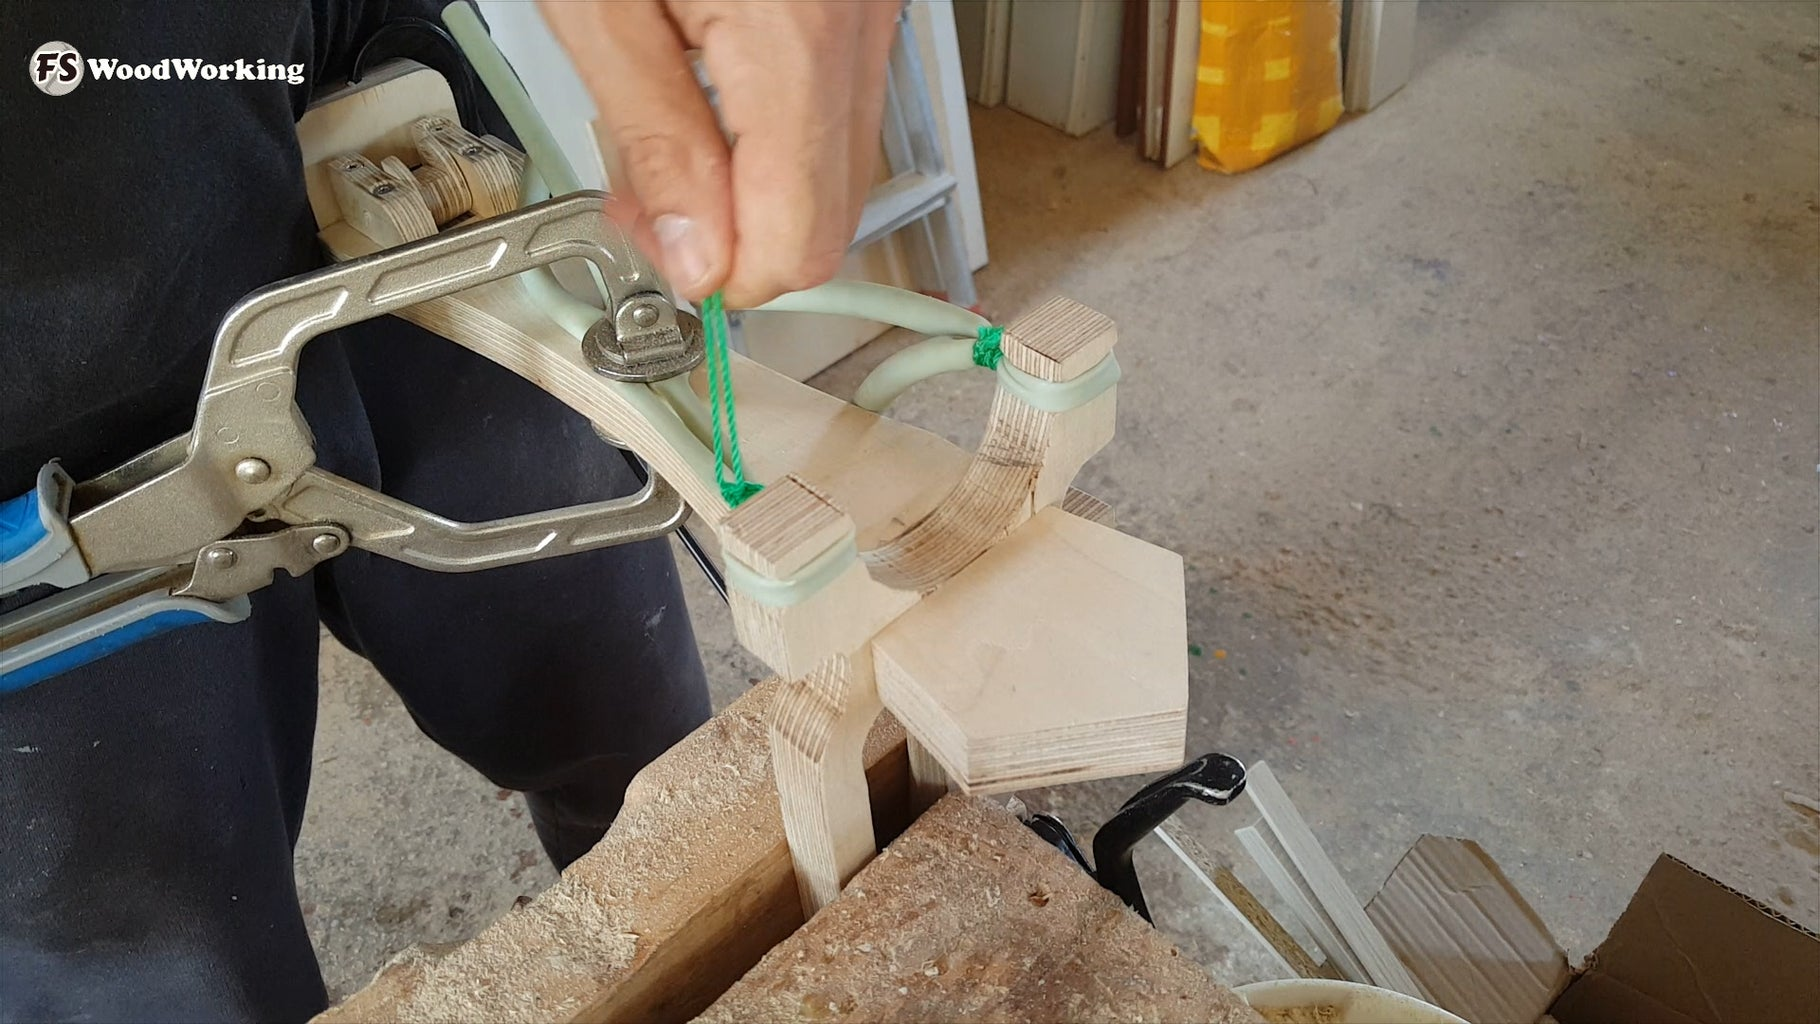 Attaching the Rubber Bands